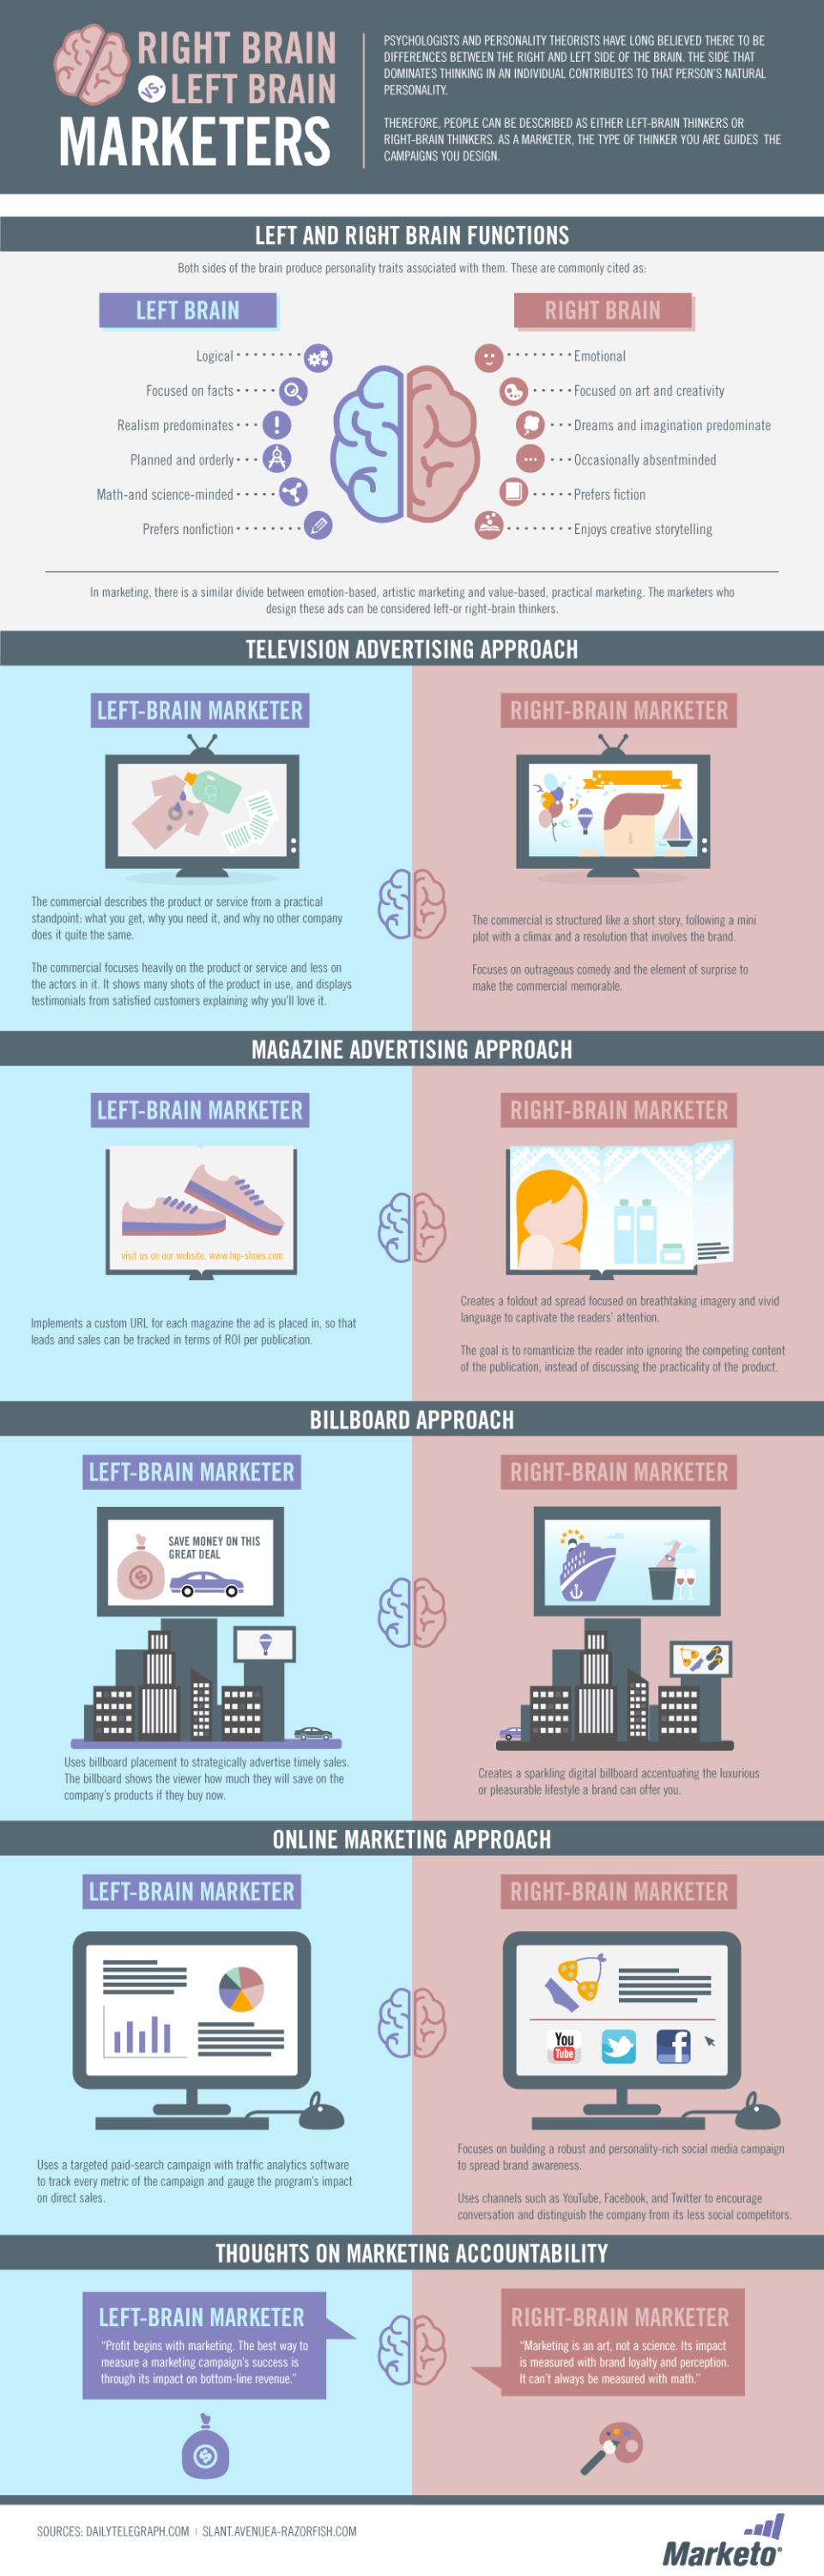 The Right Brain vs. Left Brain of Marketers Infographic by Marketo